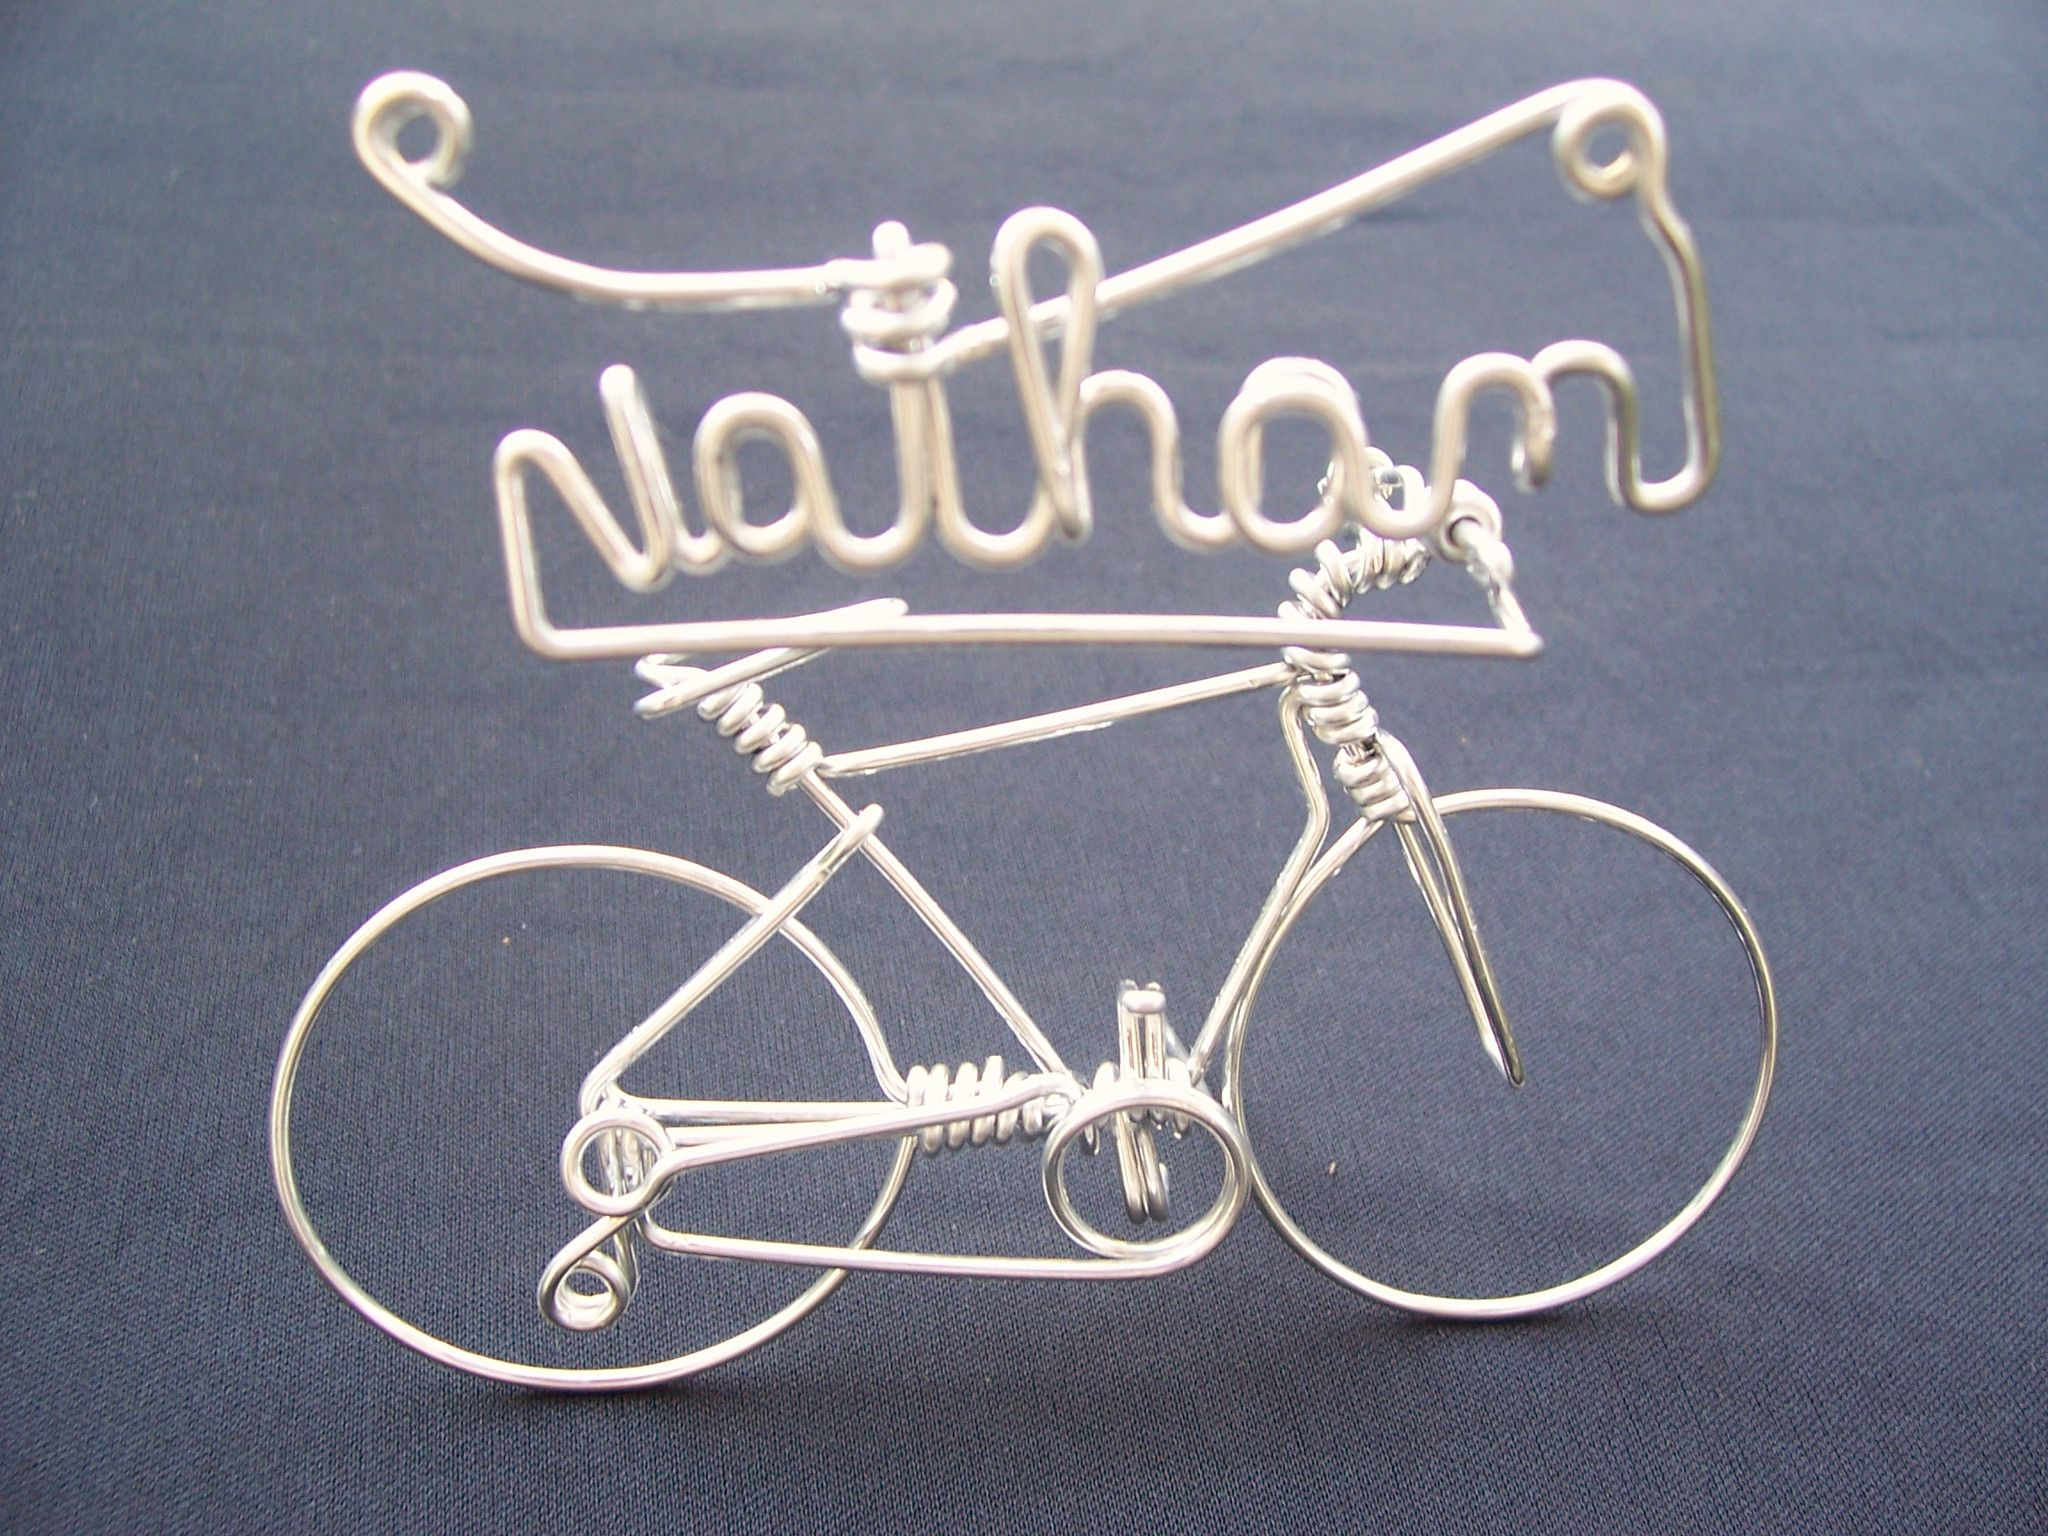 Handmade Personalised Unique Birthday Biker Gifts for Cyclists ~ Custom Your Name on Mountain Bike as Bicycle Cake Toppers & Decorations- Cool Gift Ideas ...